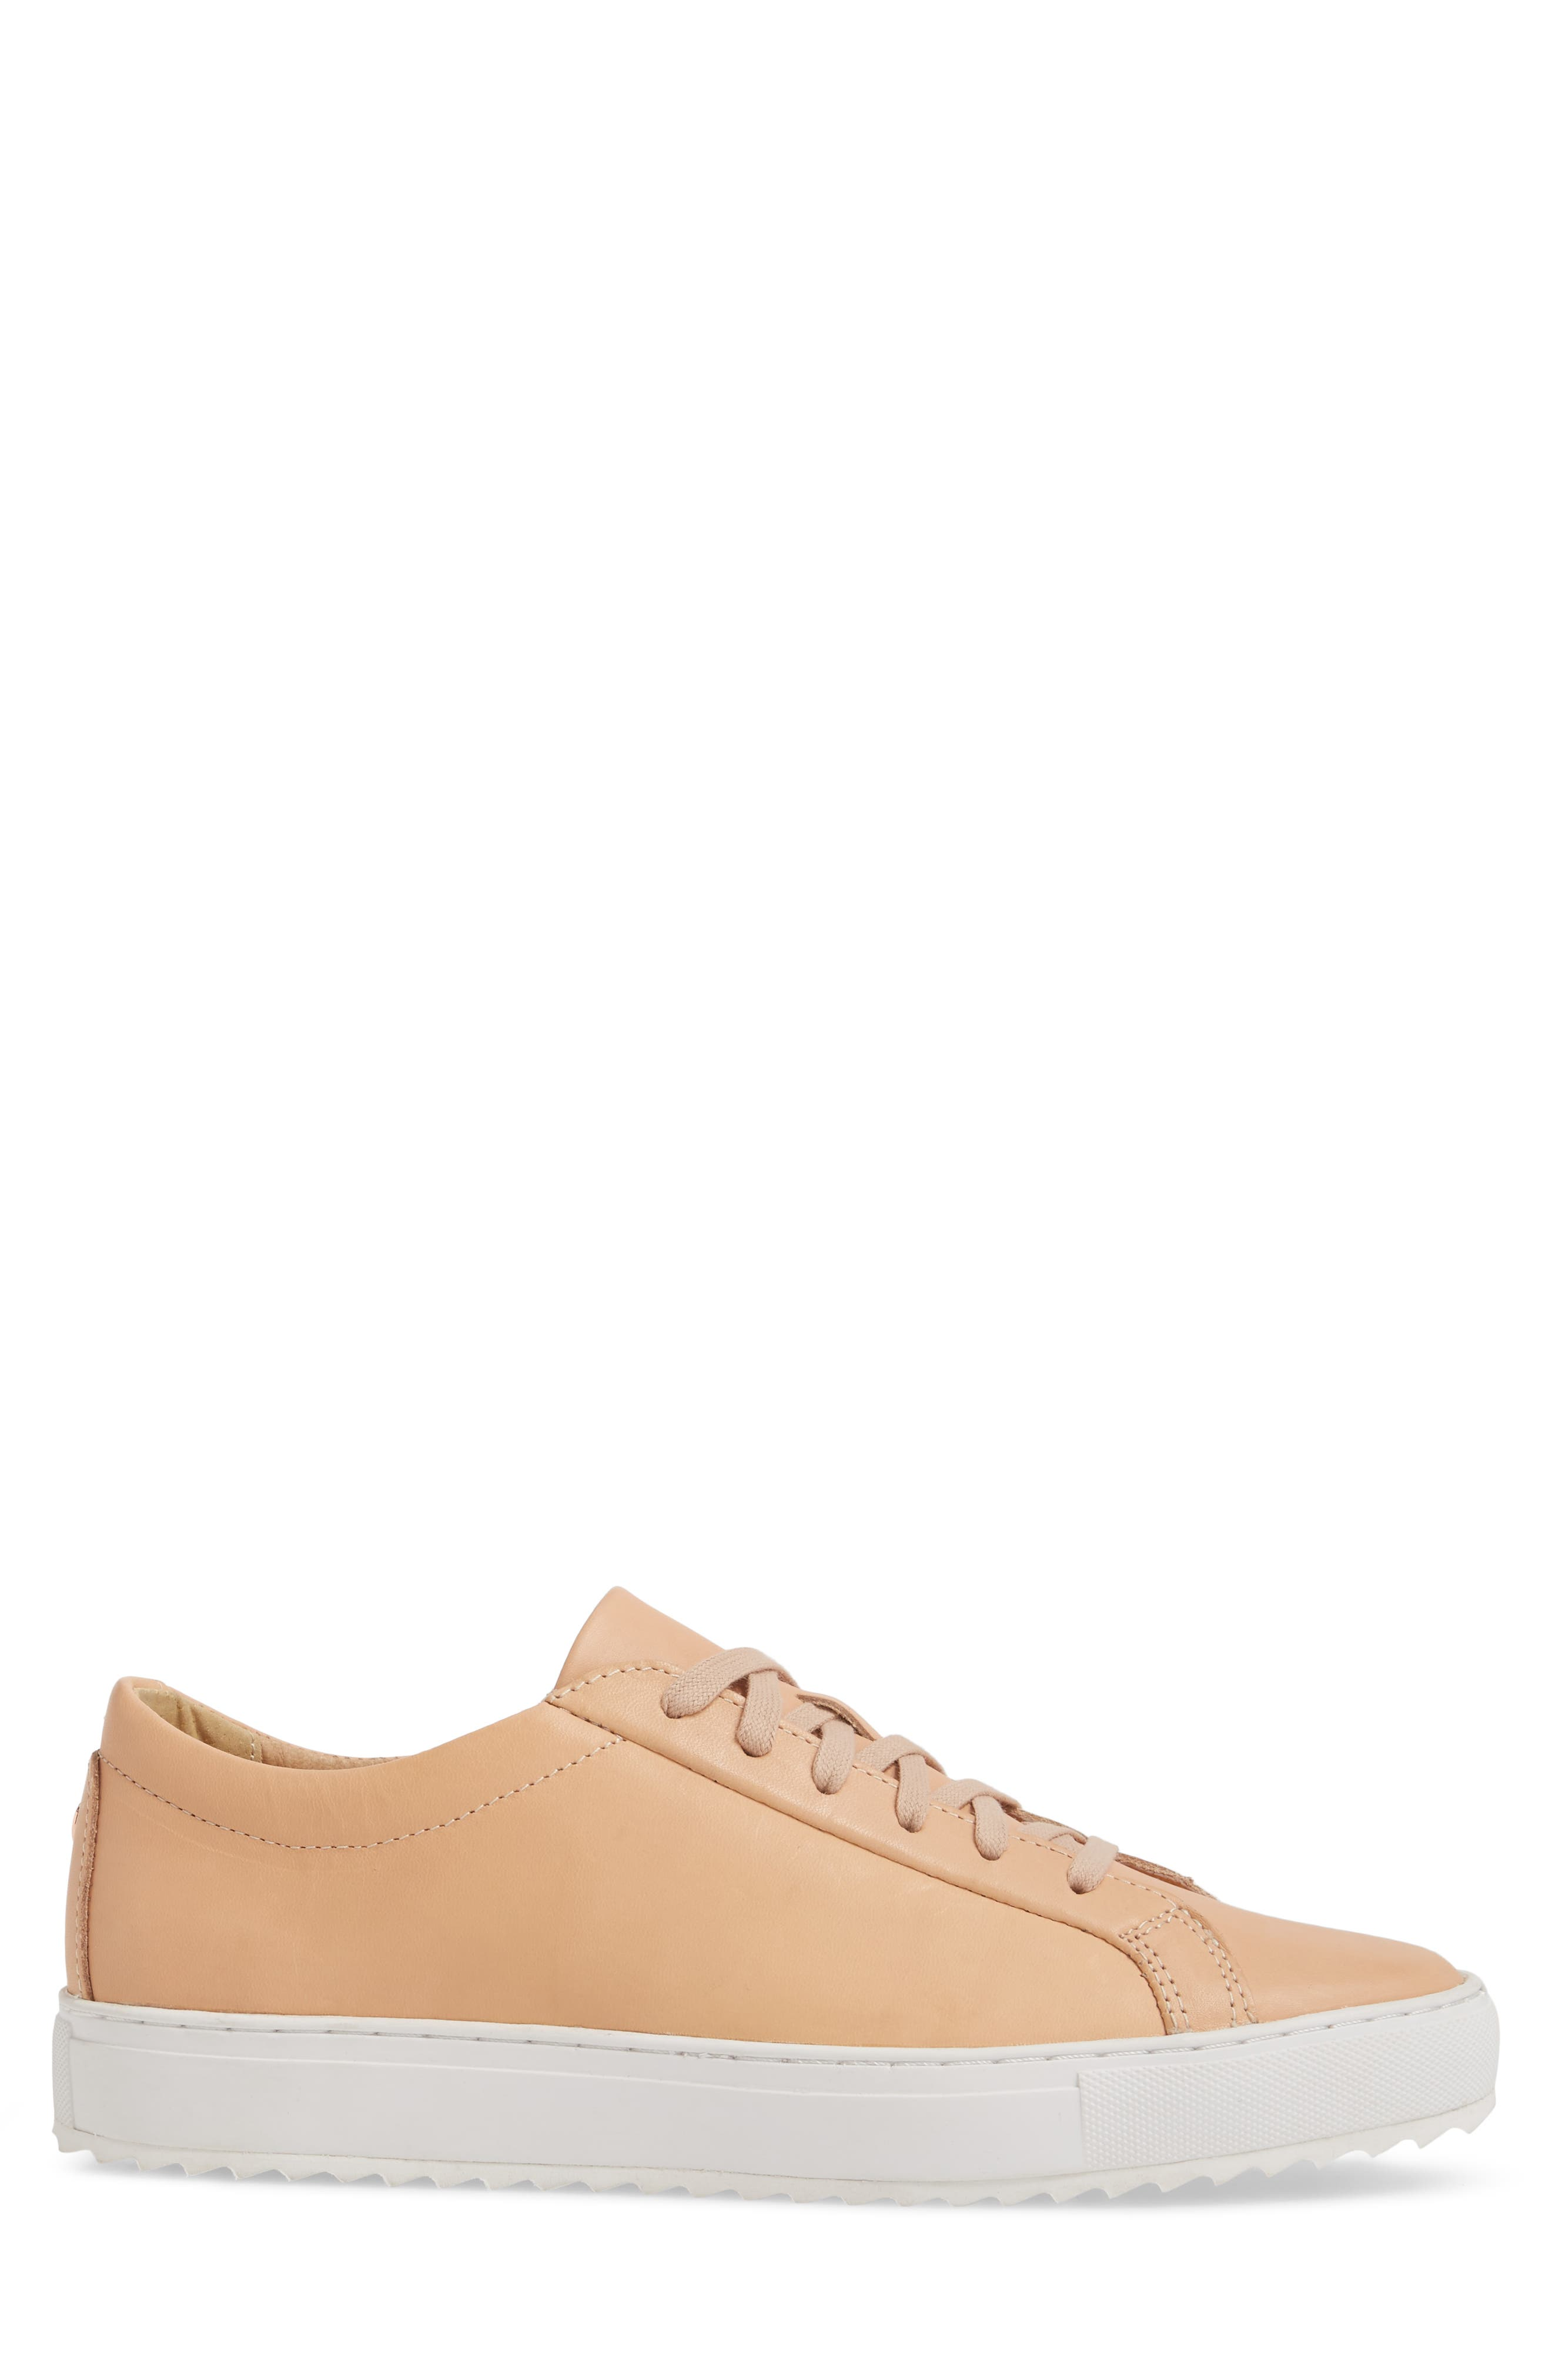 Kennedy Lugged Sneaker,                             Alternate thumbnail 3, color,                             Natural Leather